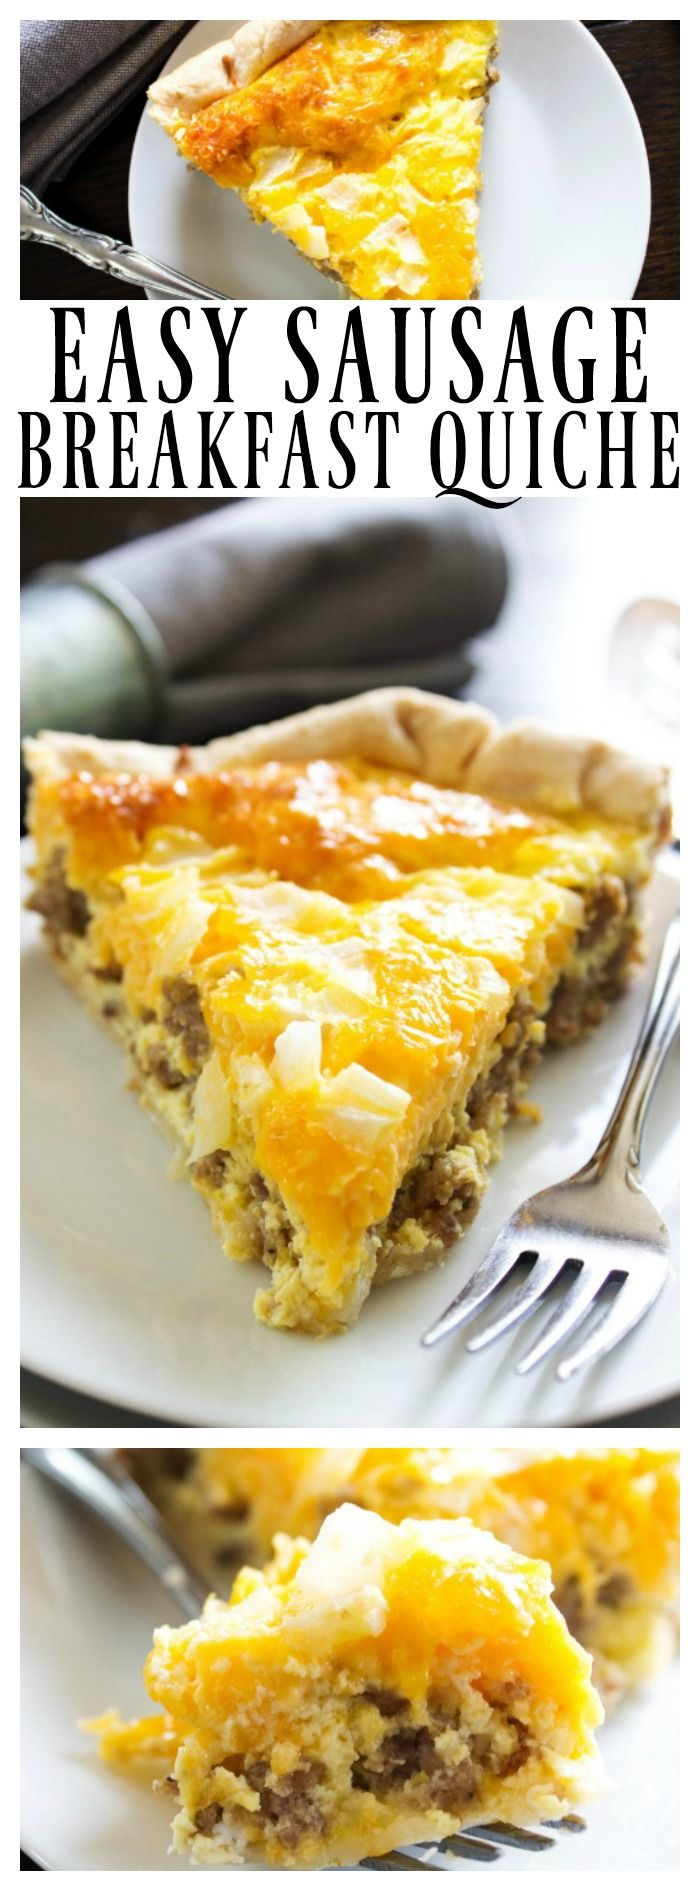 easy-sausage-breakfast-quiche-long-pin